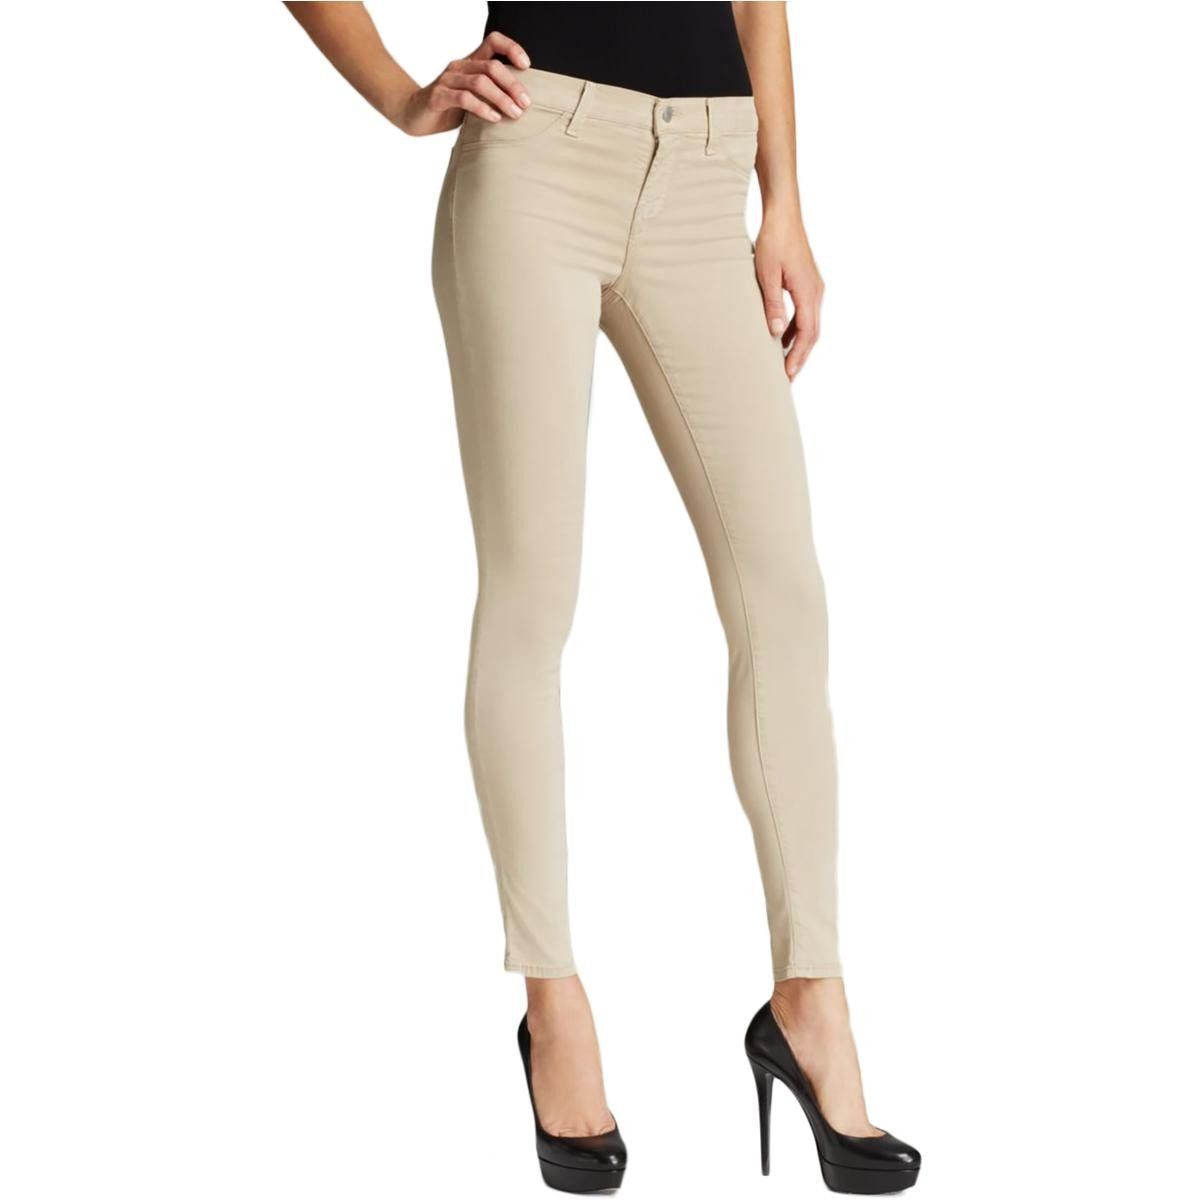 J Brand Womens Luxe Sateen Mid-Rise Skinny Pants